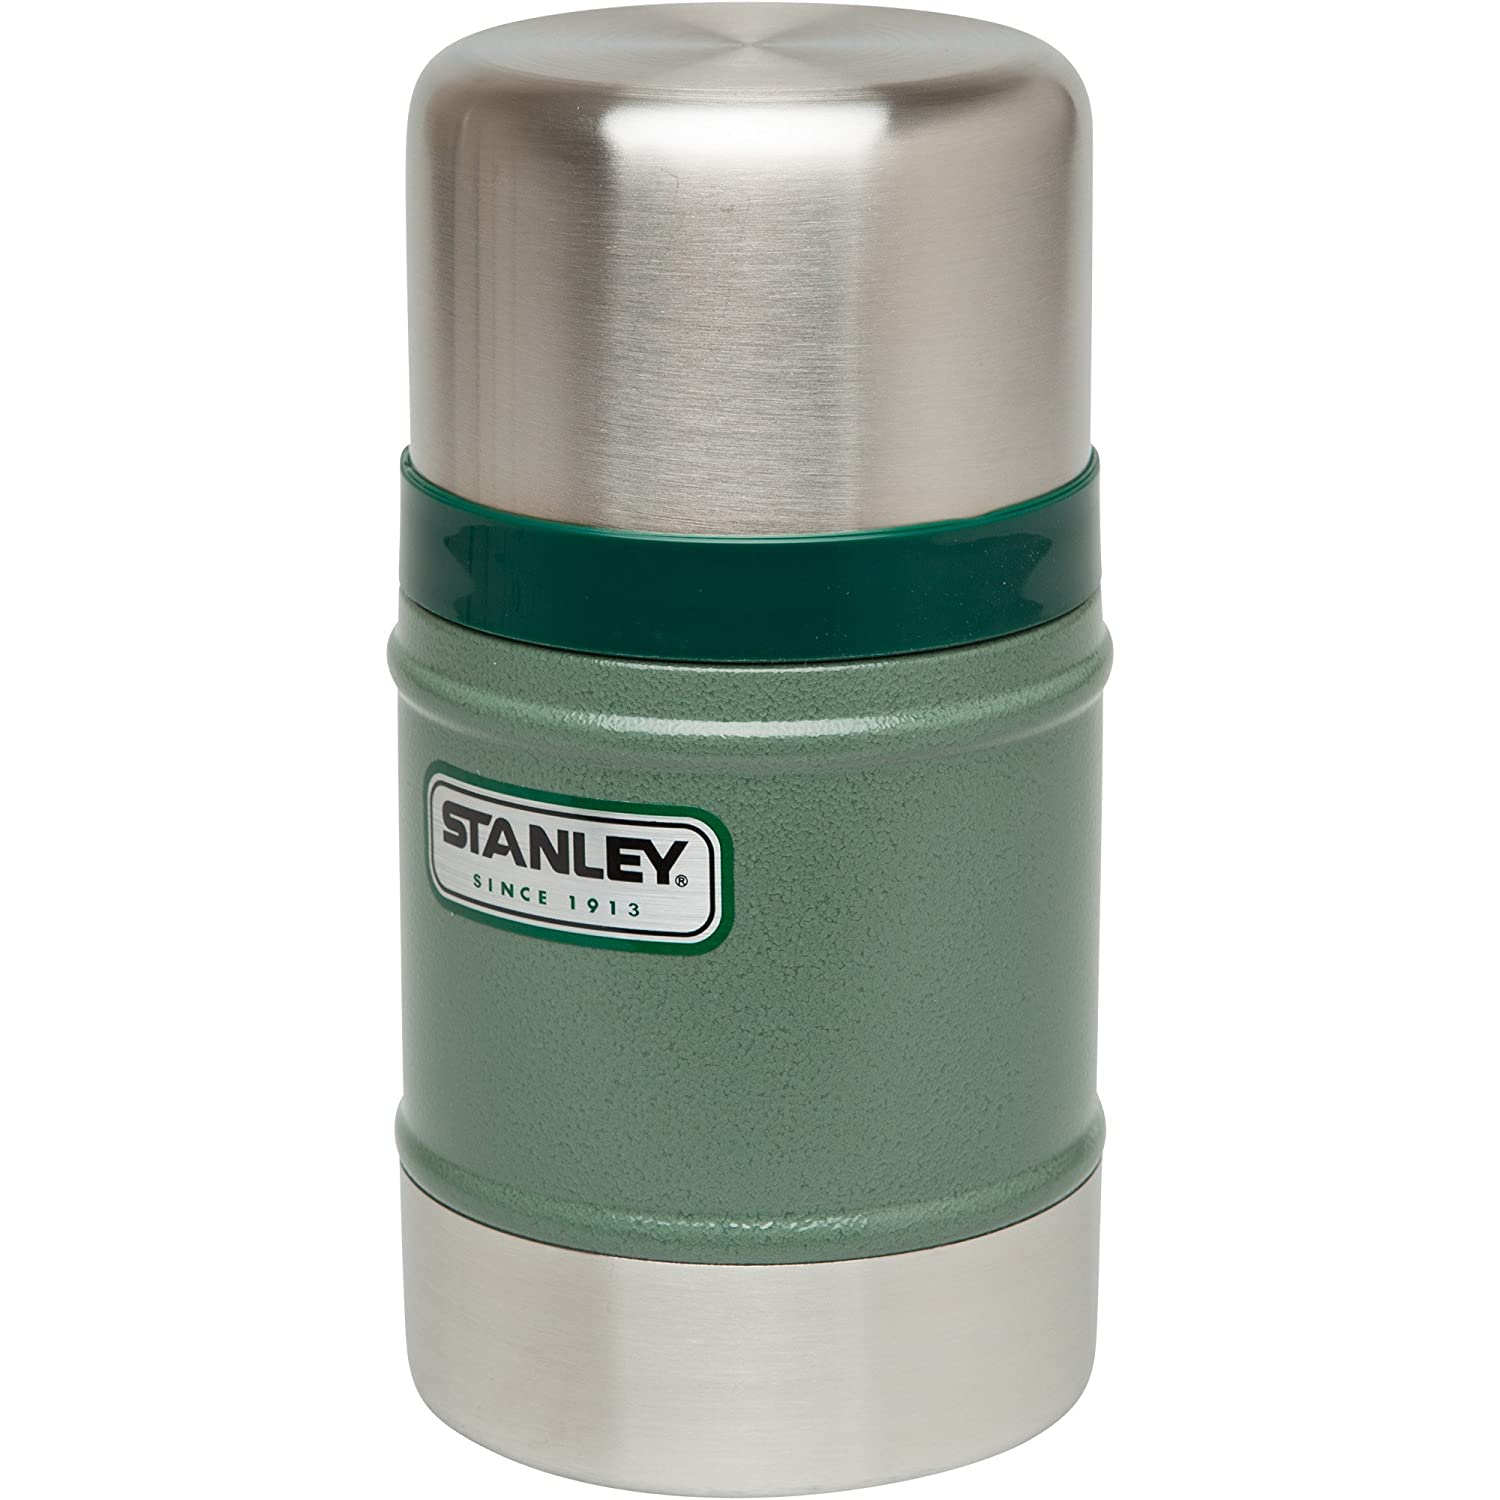 Stanley Classic Vacuum Food Jar, Stainless Steel, 05 L  Green:  Amazon: Kitchen & Home